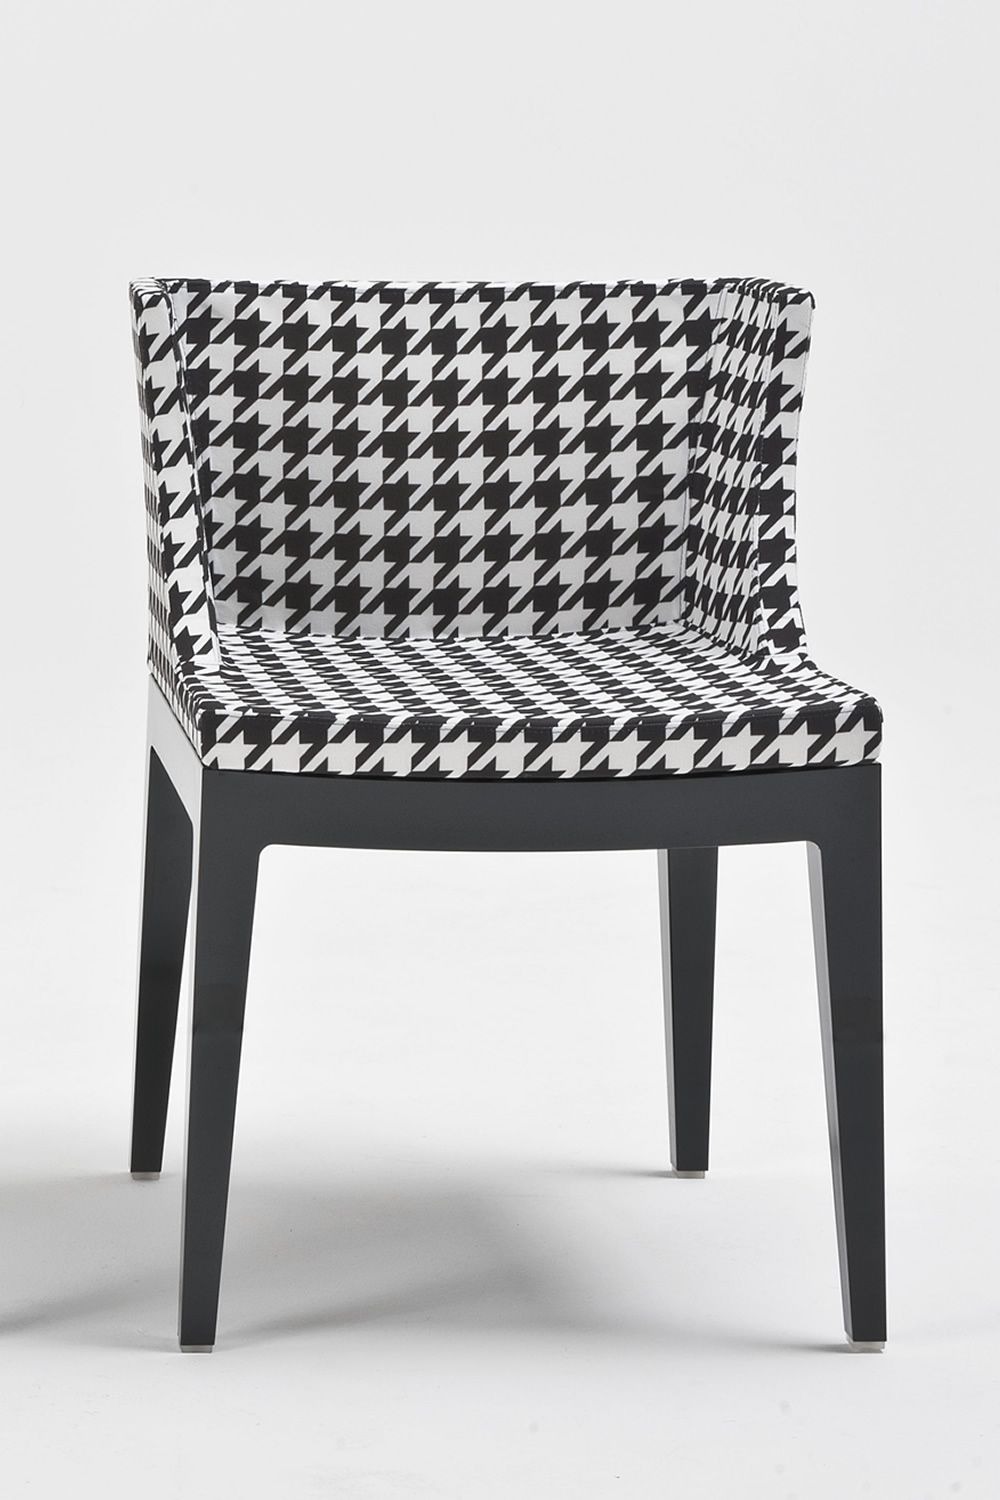 Mademoiselle design armchair by kartell with polycarbonate frame and uphols - Fauteuil kartell mademoiselle ...